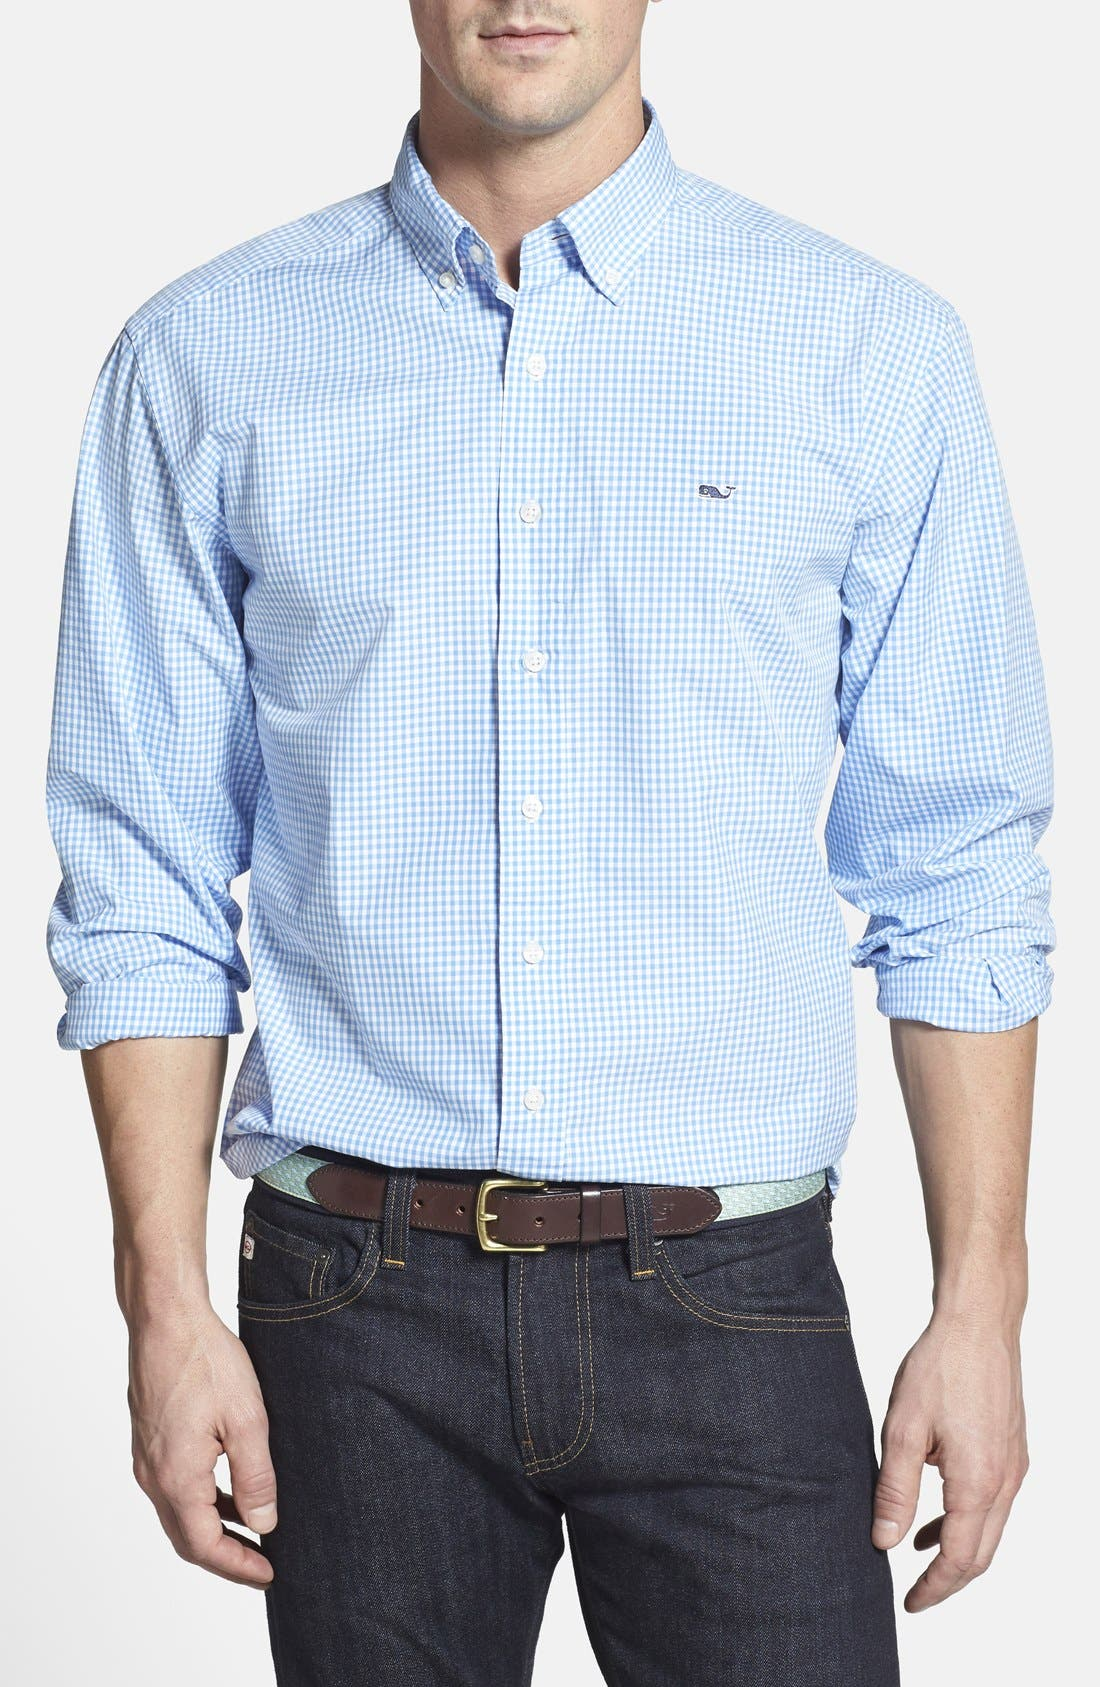 Main Image - Vineyard Vines 'Whale' Classic Fit Check Poplin Sport Shirt